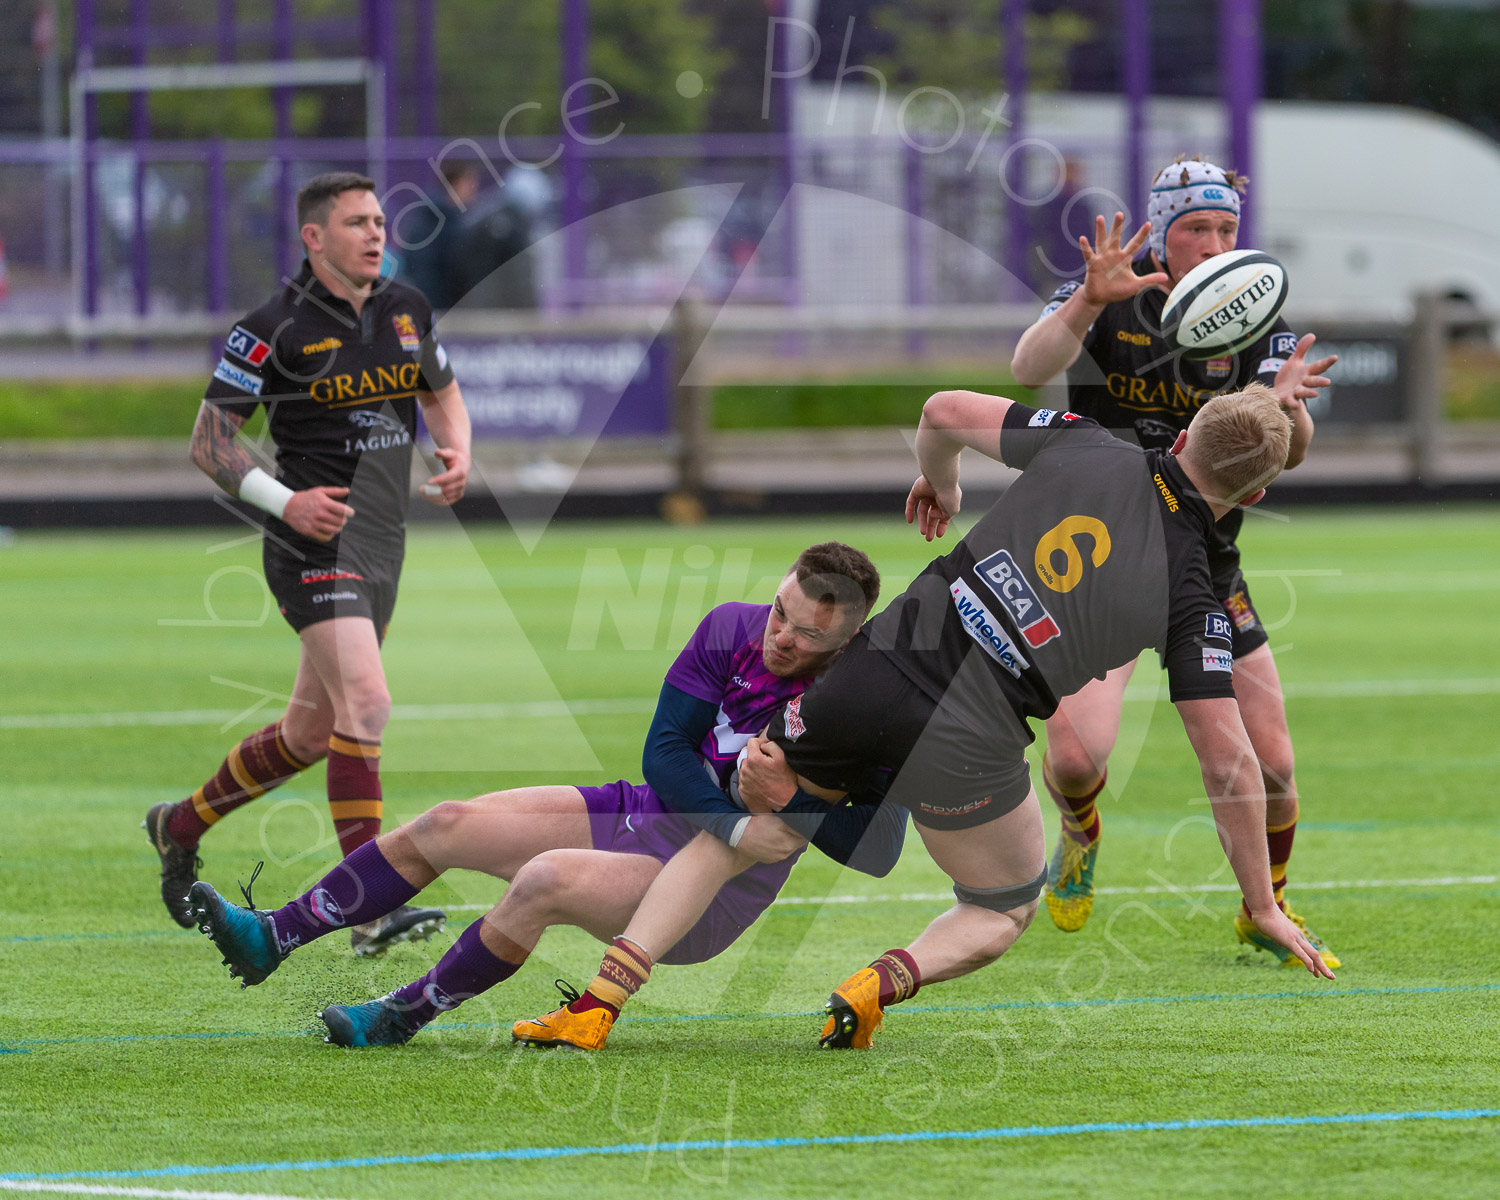 20190427 Loughborough vs Ampthill 1st XV #6579